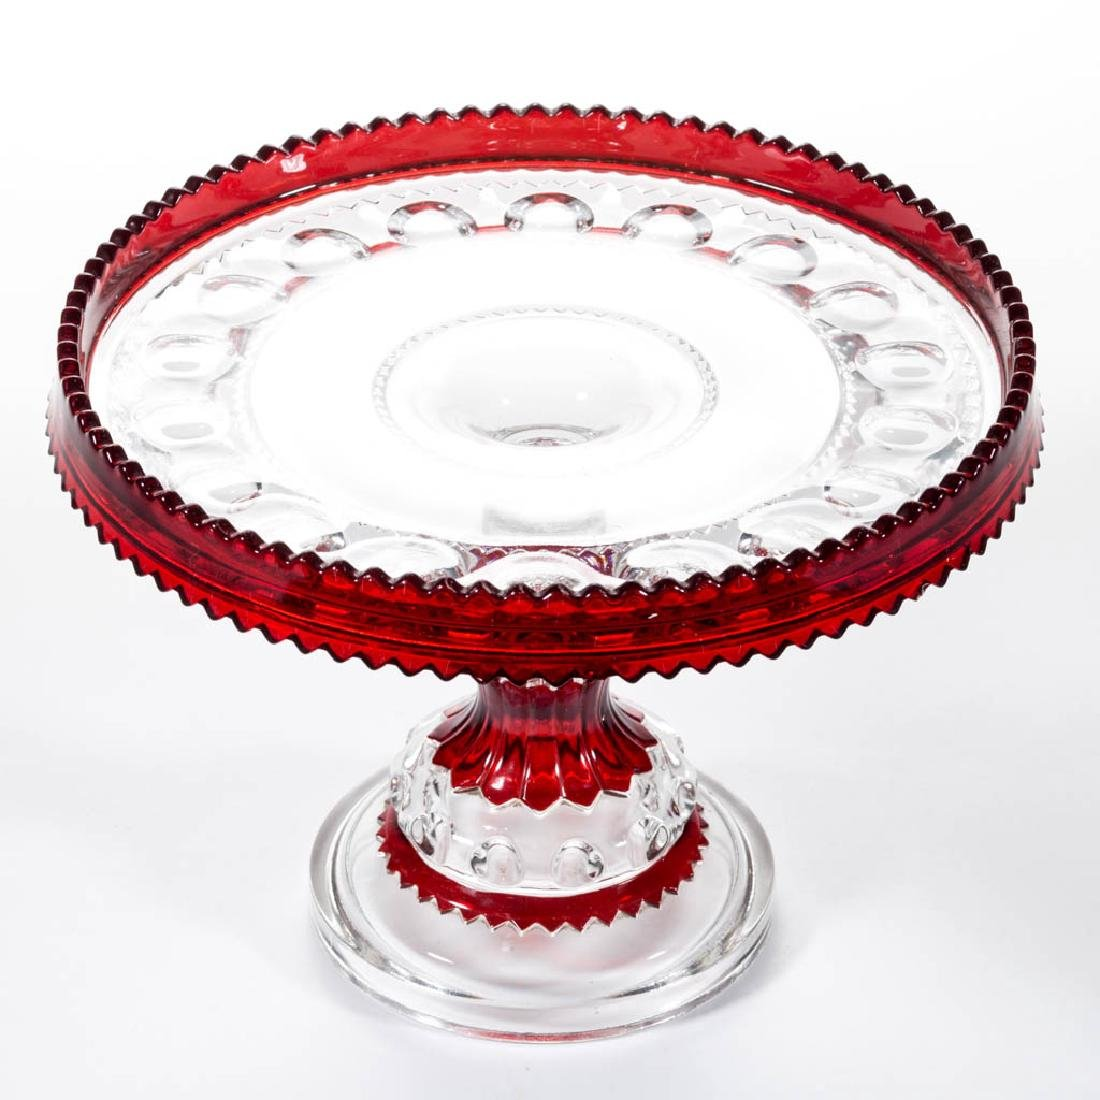 KING'S CROWN / EXCELSIOR (OMN) - RUBY-STAINED SALVER /